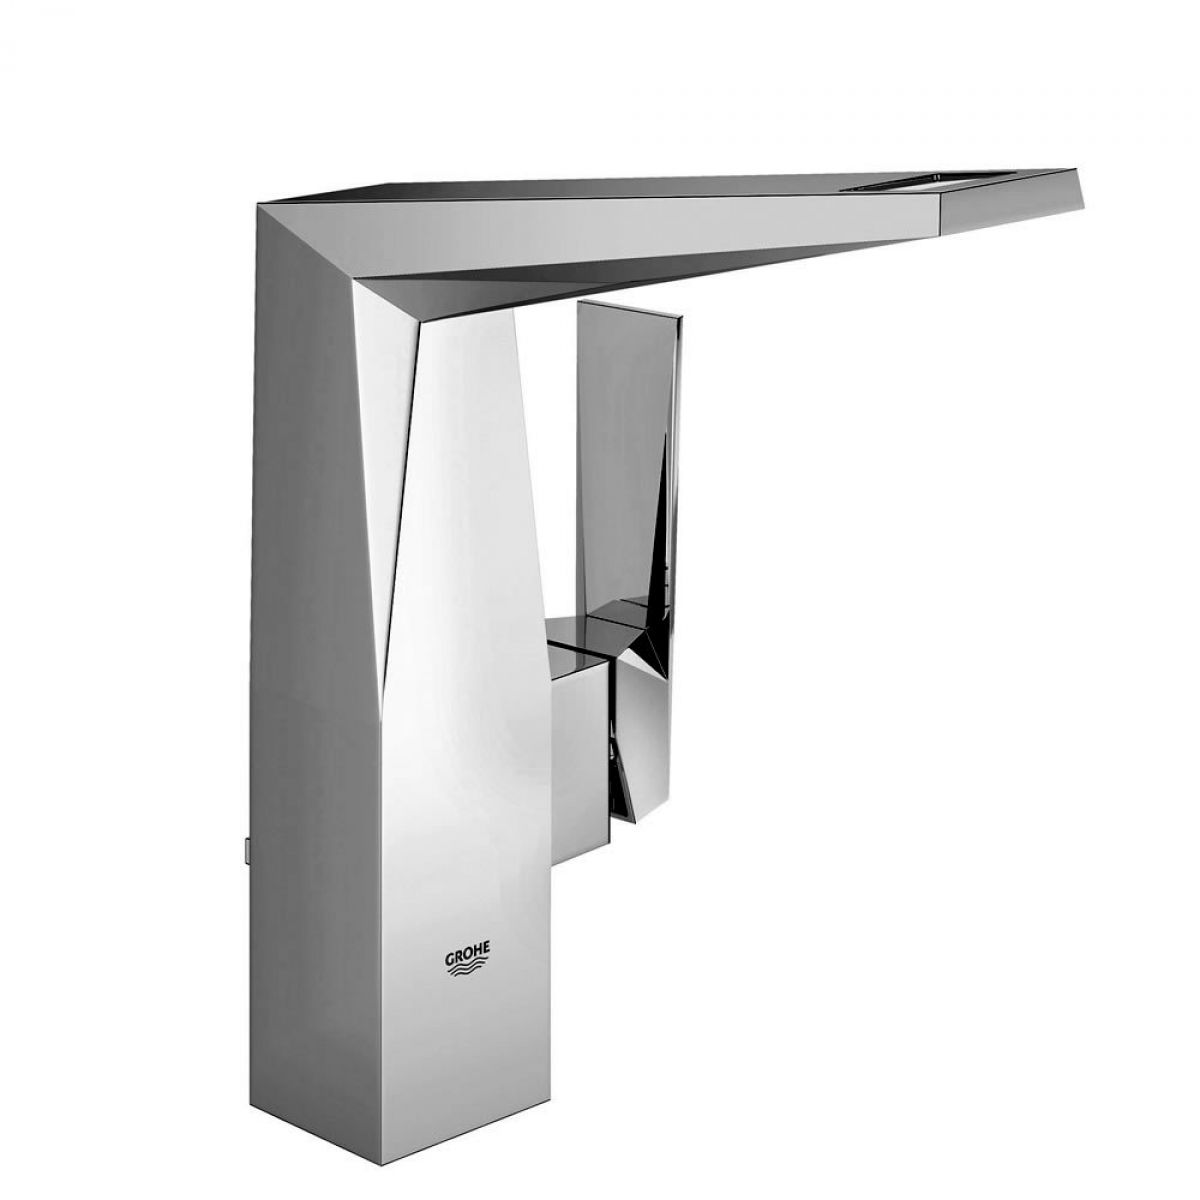 Grohe Allure Brilliant Side Lever Basin Mixer Tap : UK Bathrooms